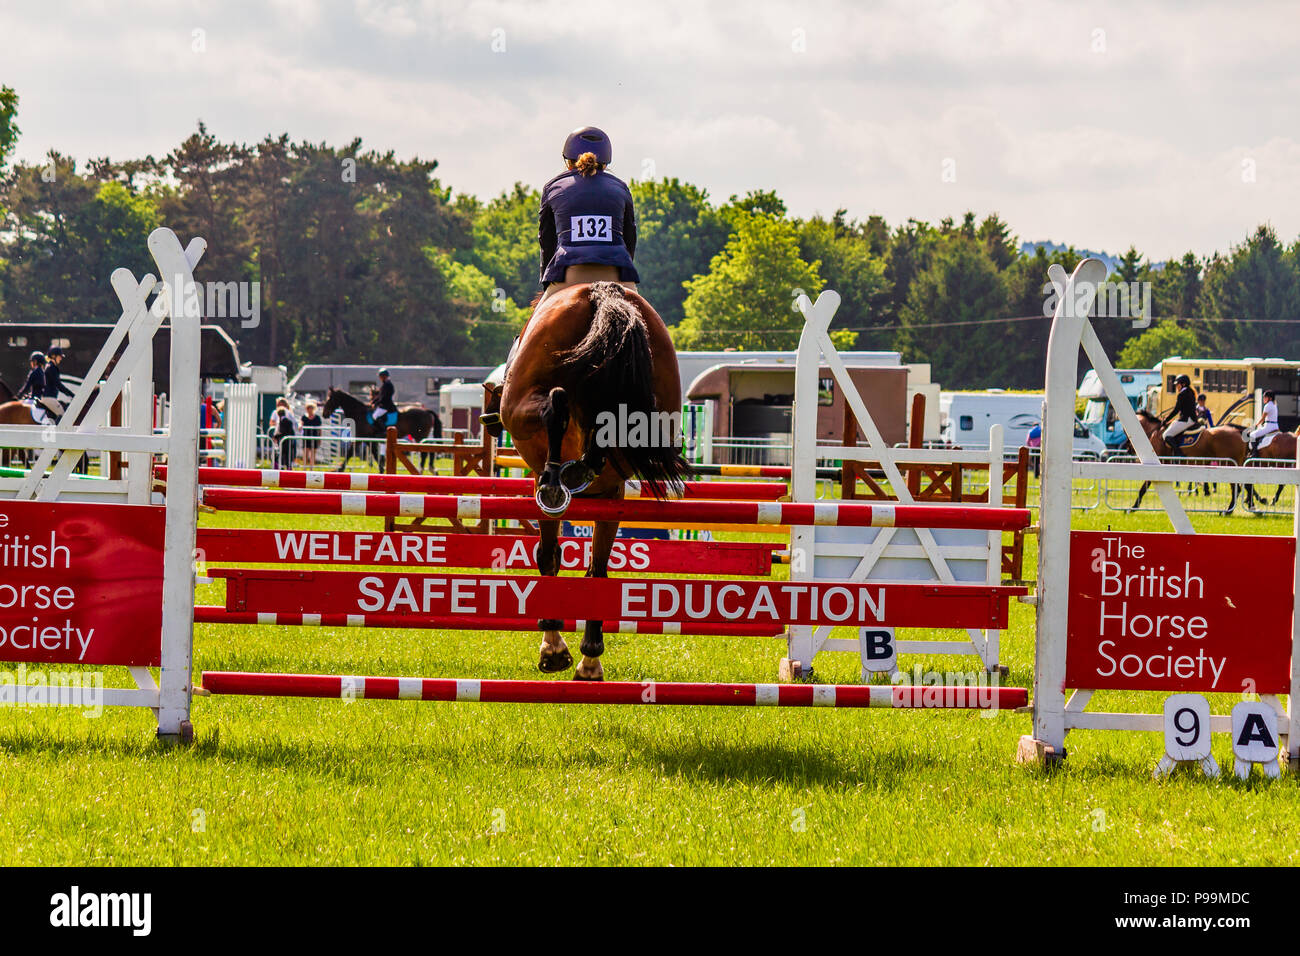 Show jump with British Horse Society banner at Northumberland County Show, 2018. - Stock Image